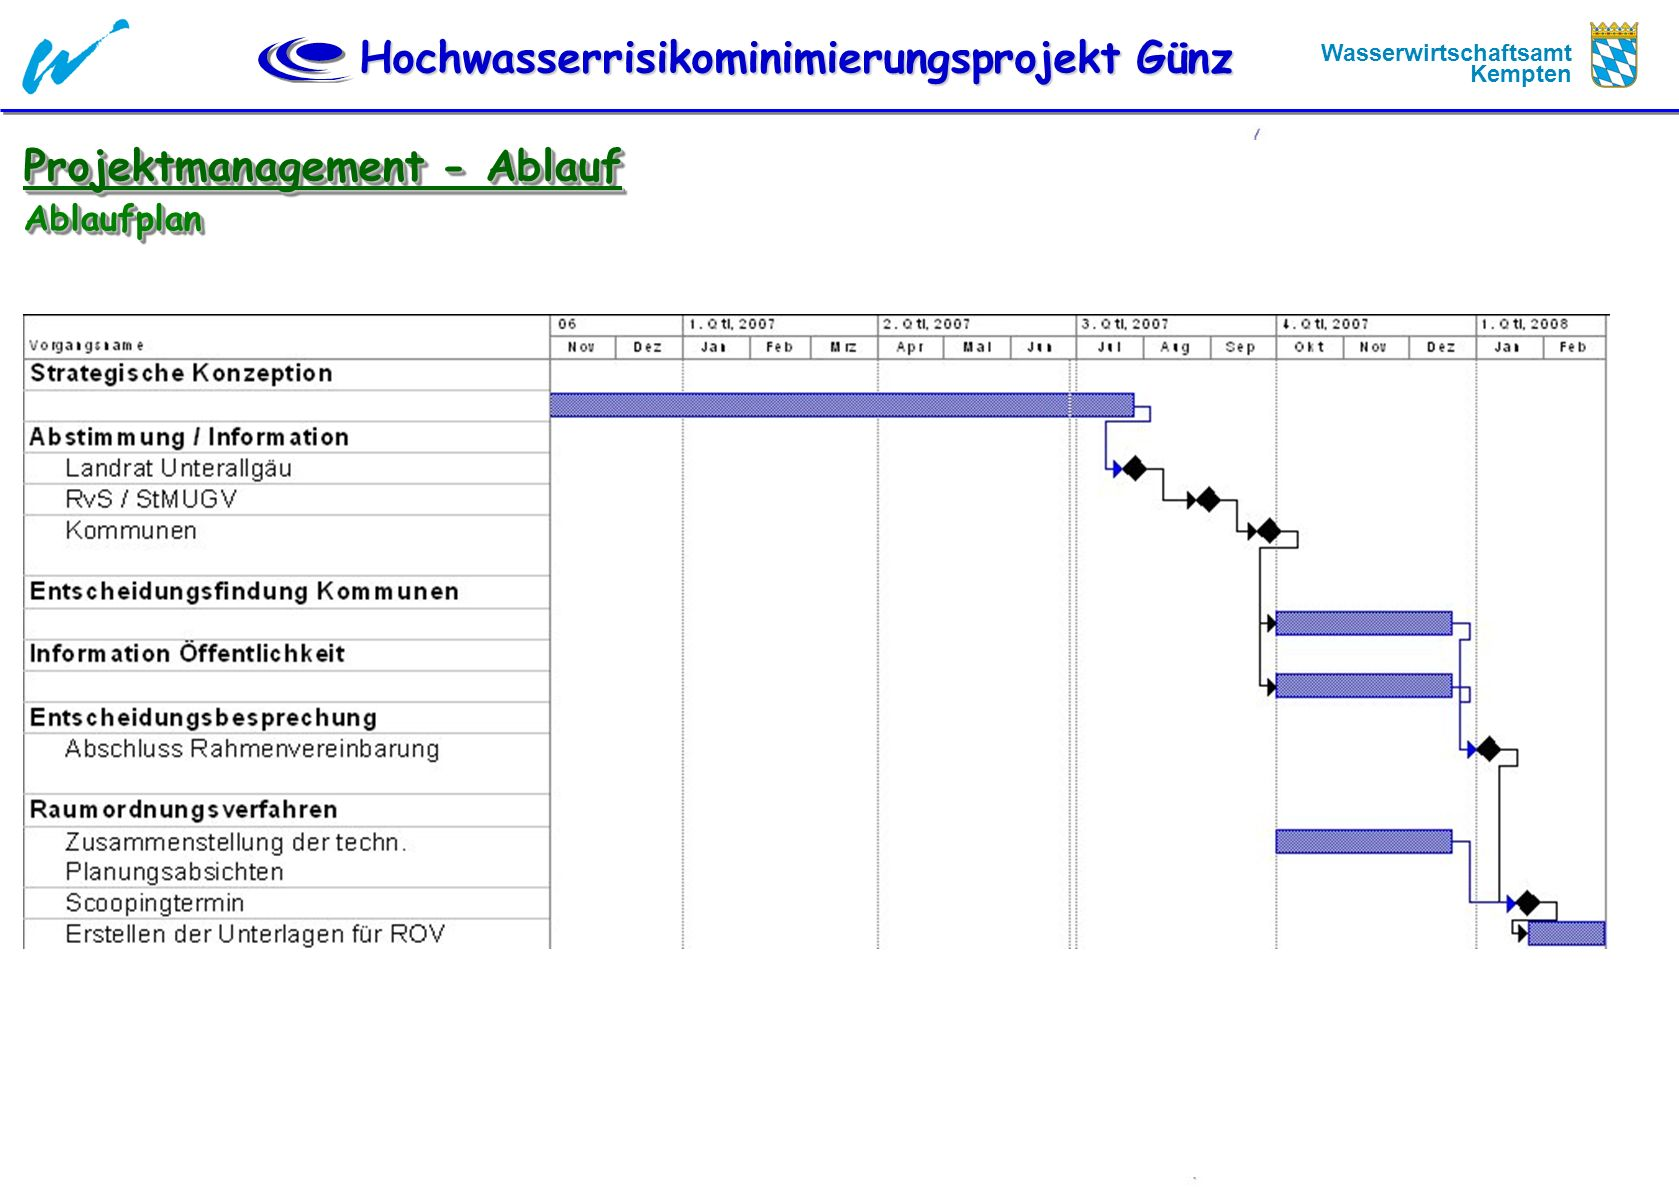 Projektmanagement - Ablauf